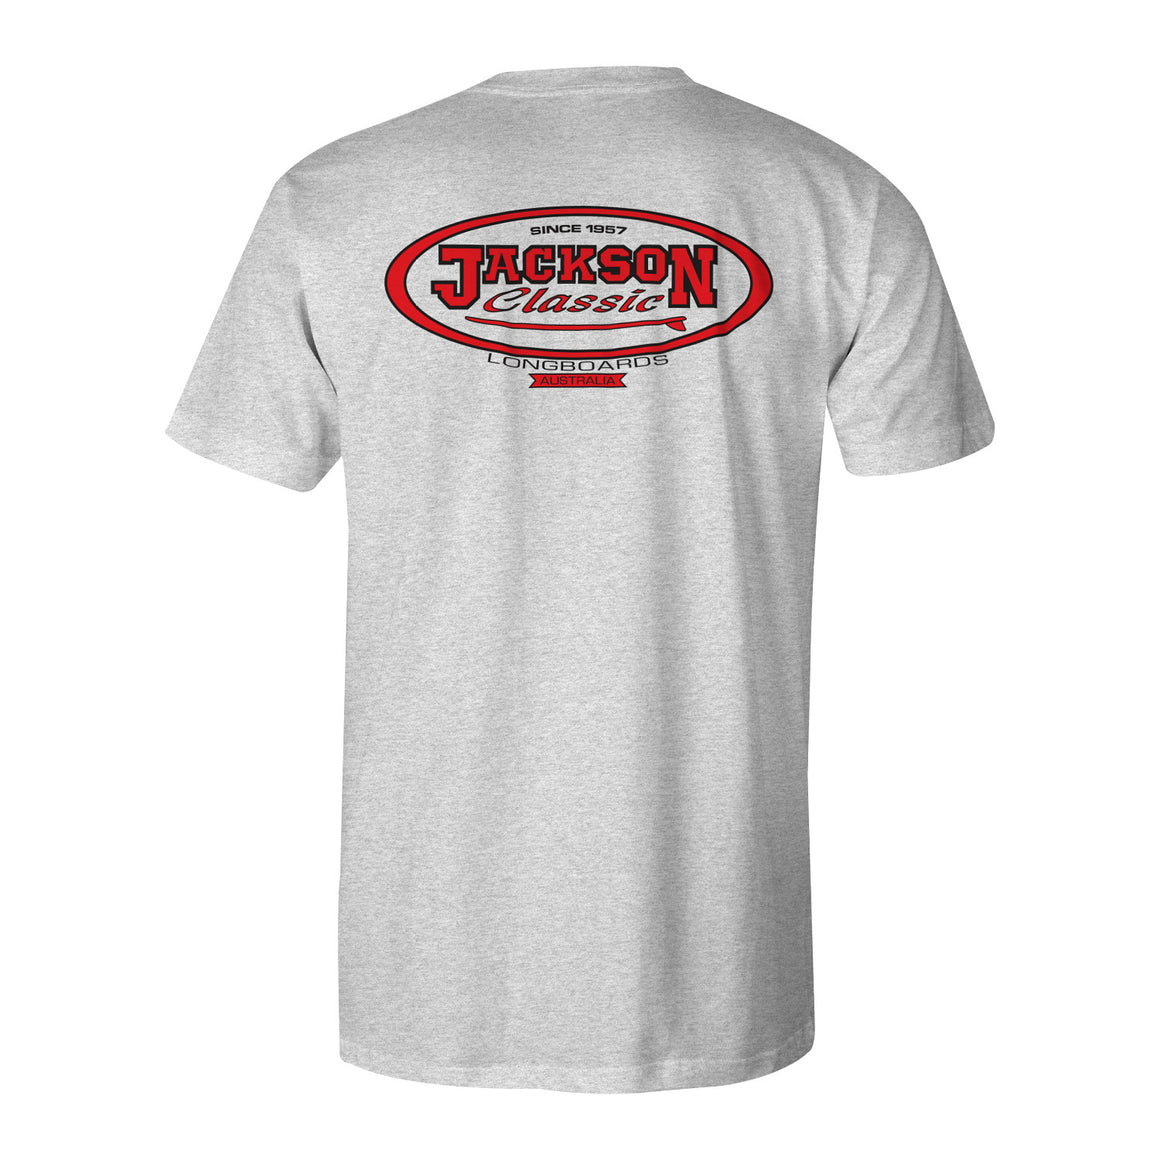 Jackson Surfboards T-Shirt Grey Marle